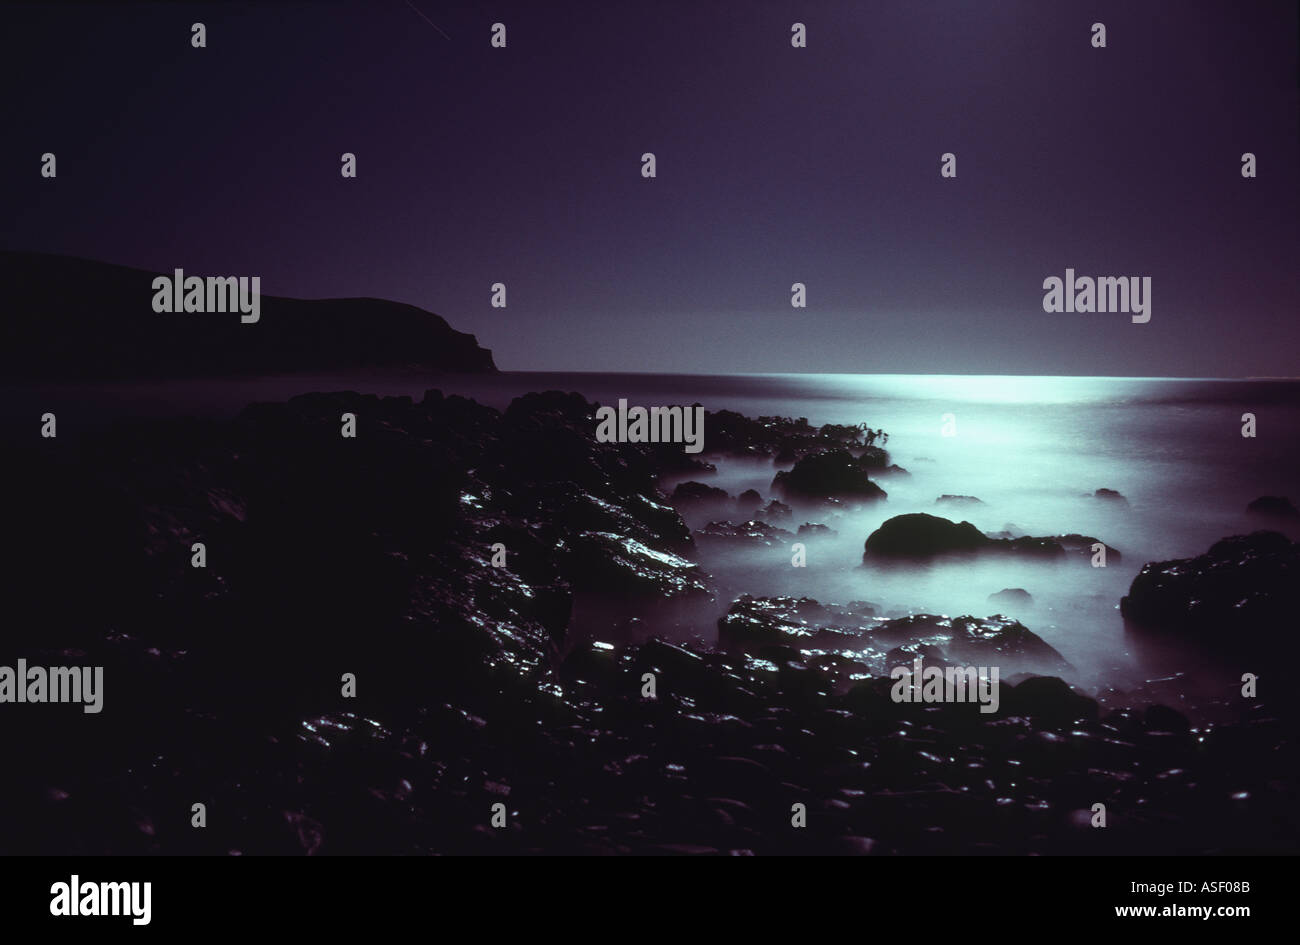 Seascape by moonlight Time exposure of rocky coastline lit only by moonlight Bull kelp Otago New Zealand - Stock Image